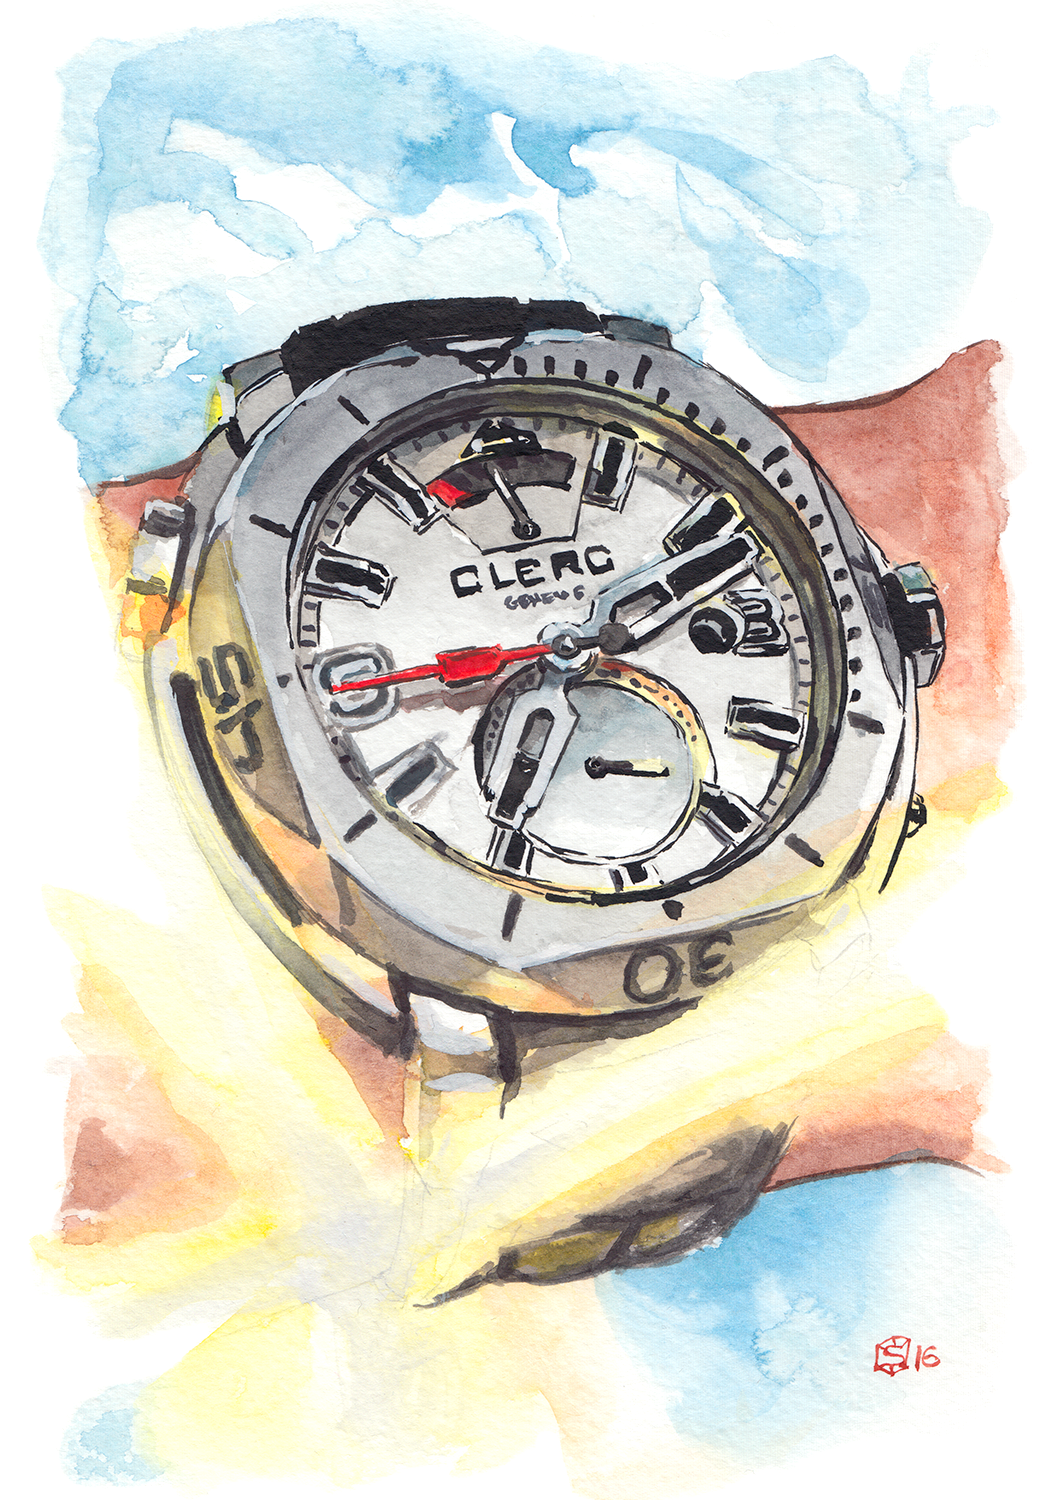 Watercolor painting of Clerc Hydroscaph GMT Power Reserve Chronometer